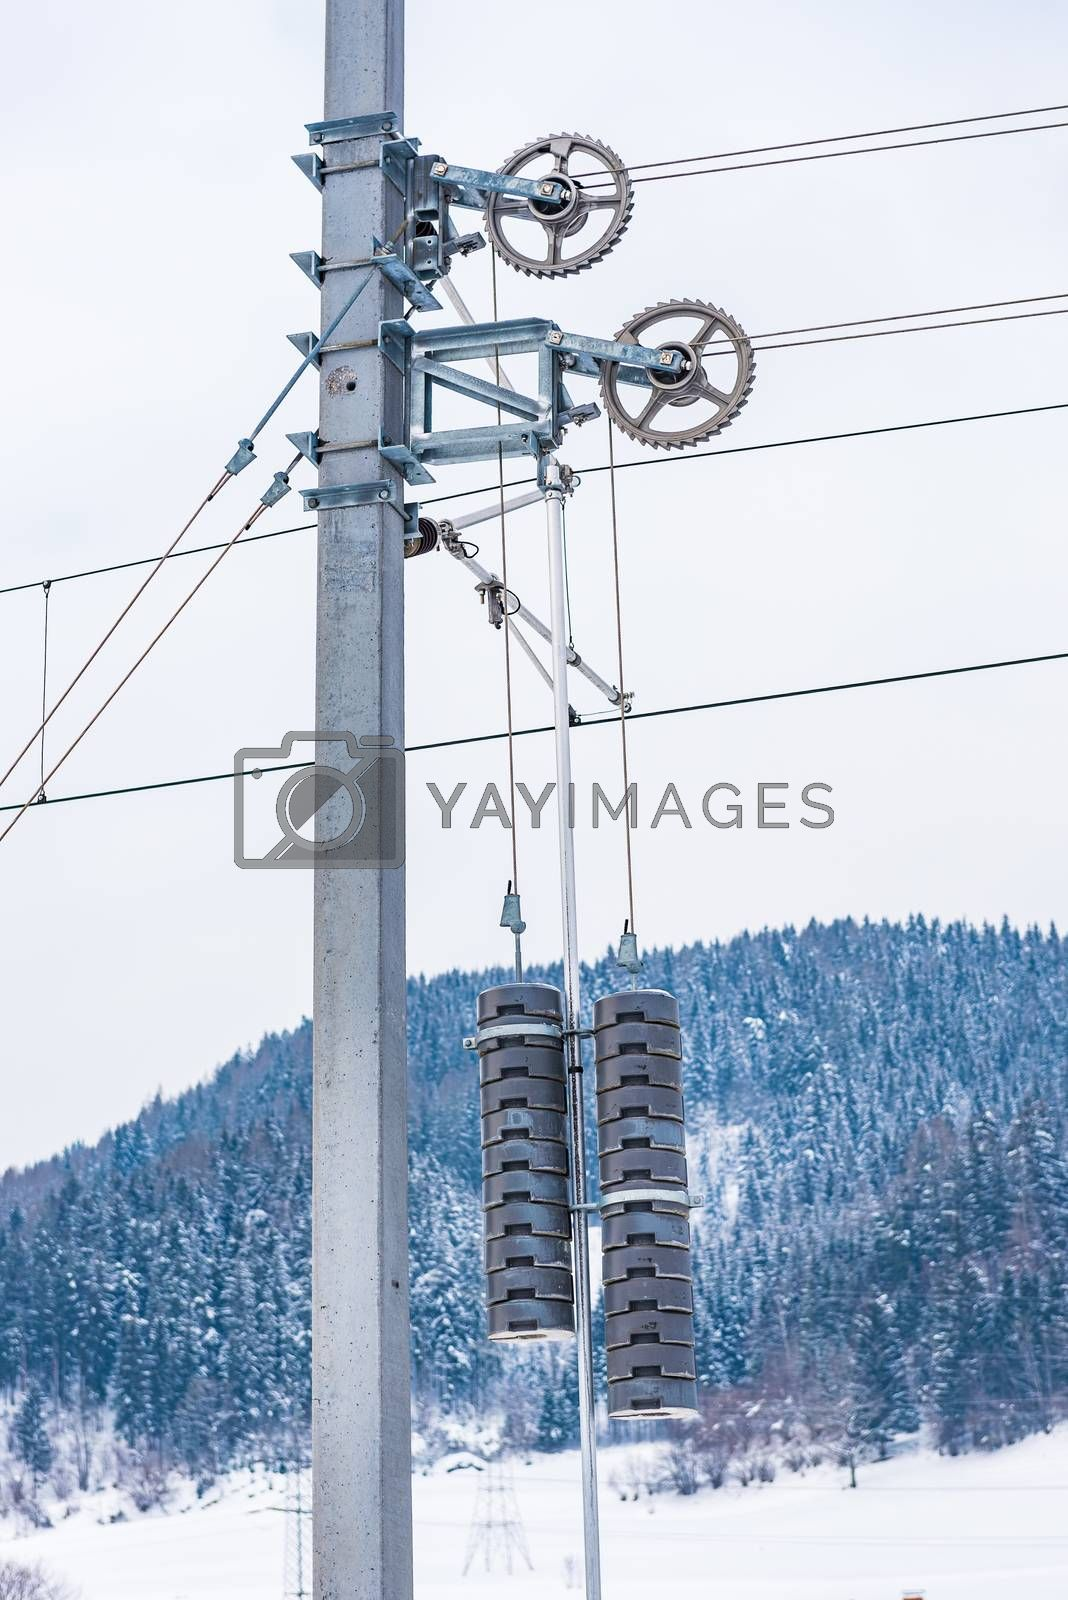 Railway electrification system details. Electric power overhead line, steel pylon with concrete counterweights hanging from a pulley system, keeps railroad overhead catenary wires in correct tension